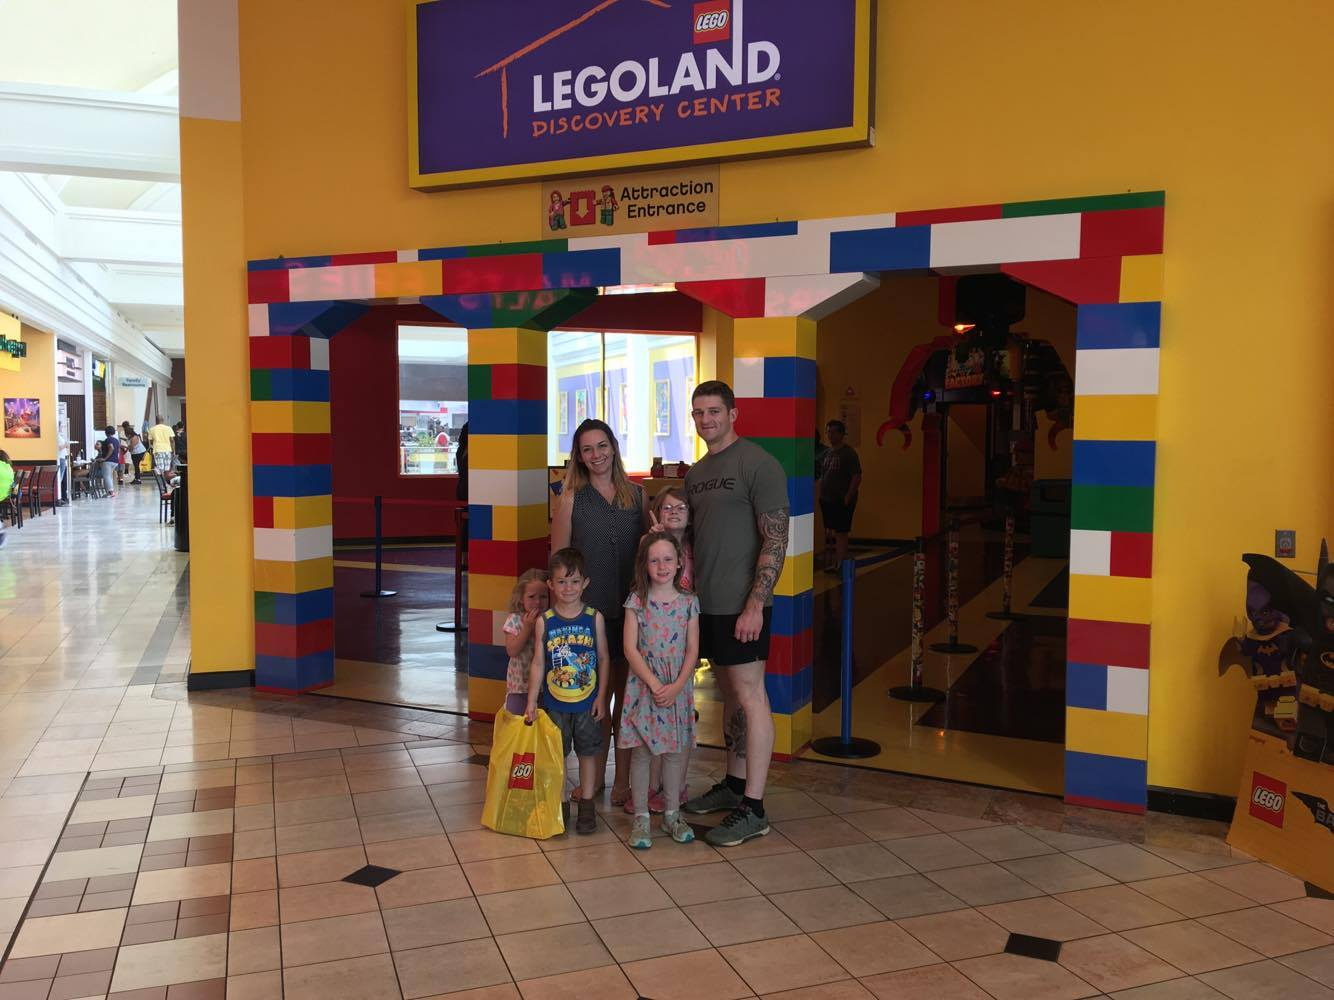 Legoland Discovery Center Atlanta: Summer Fun For Your Military family!